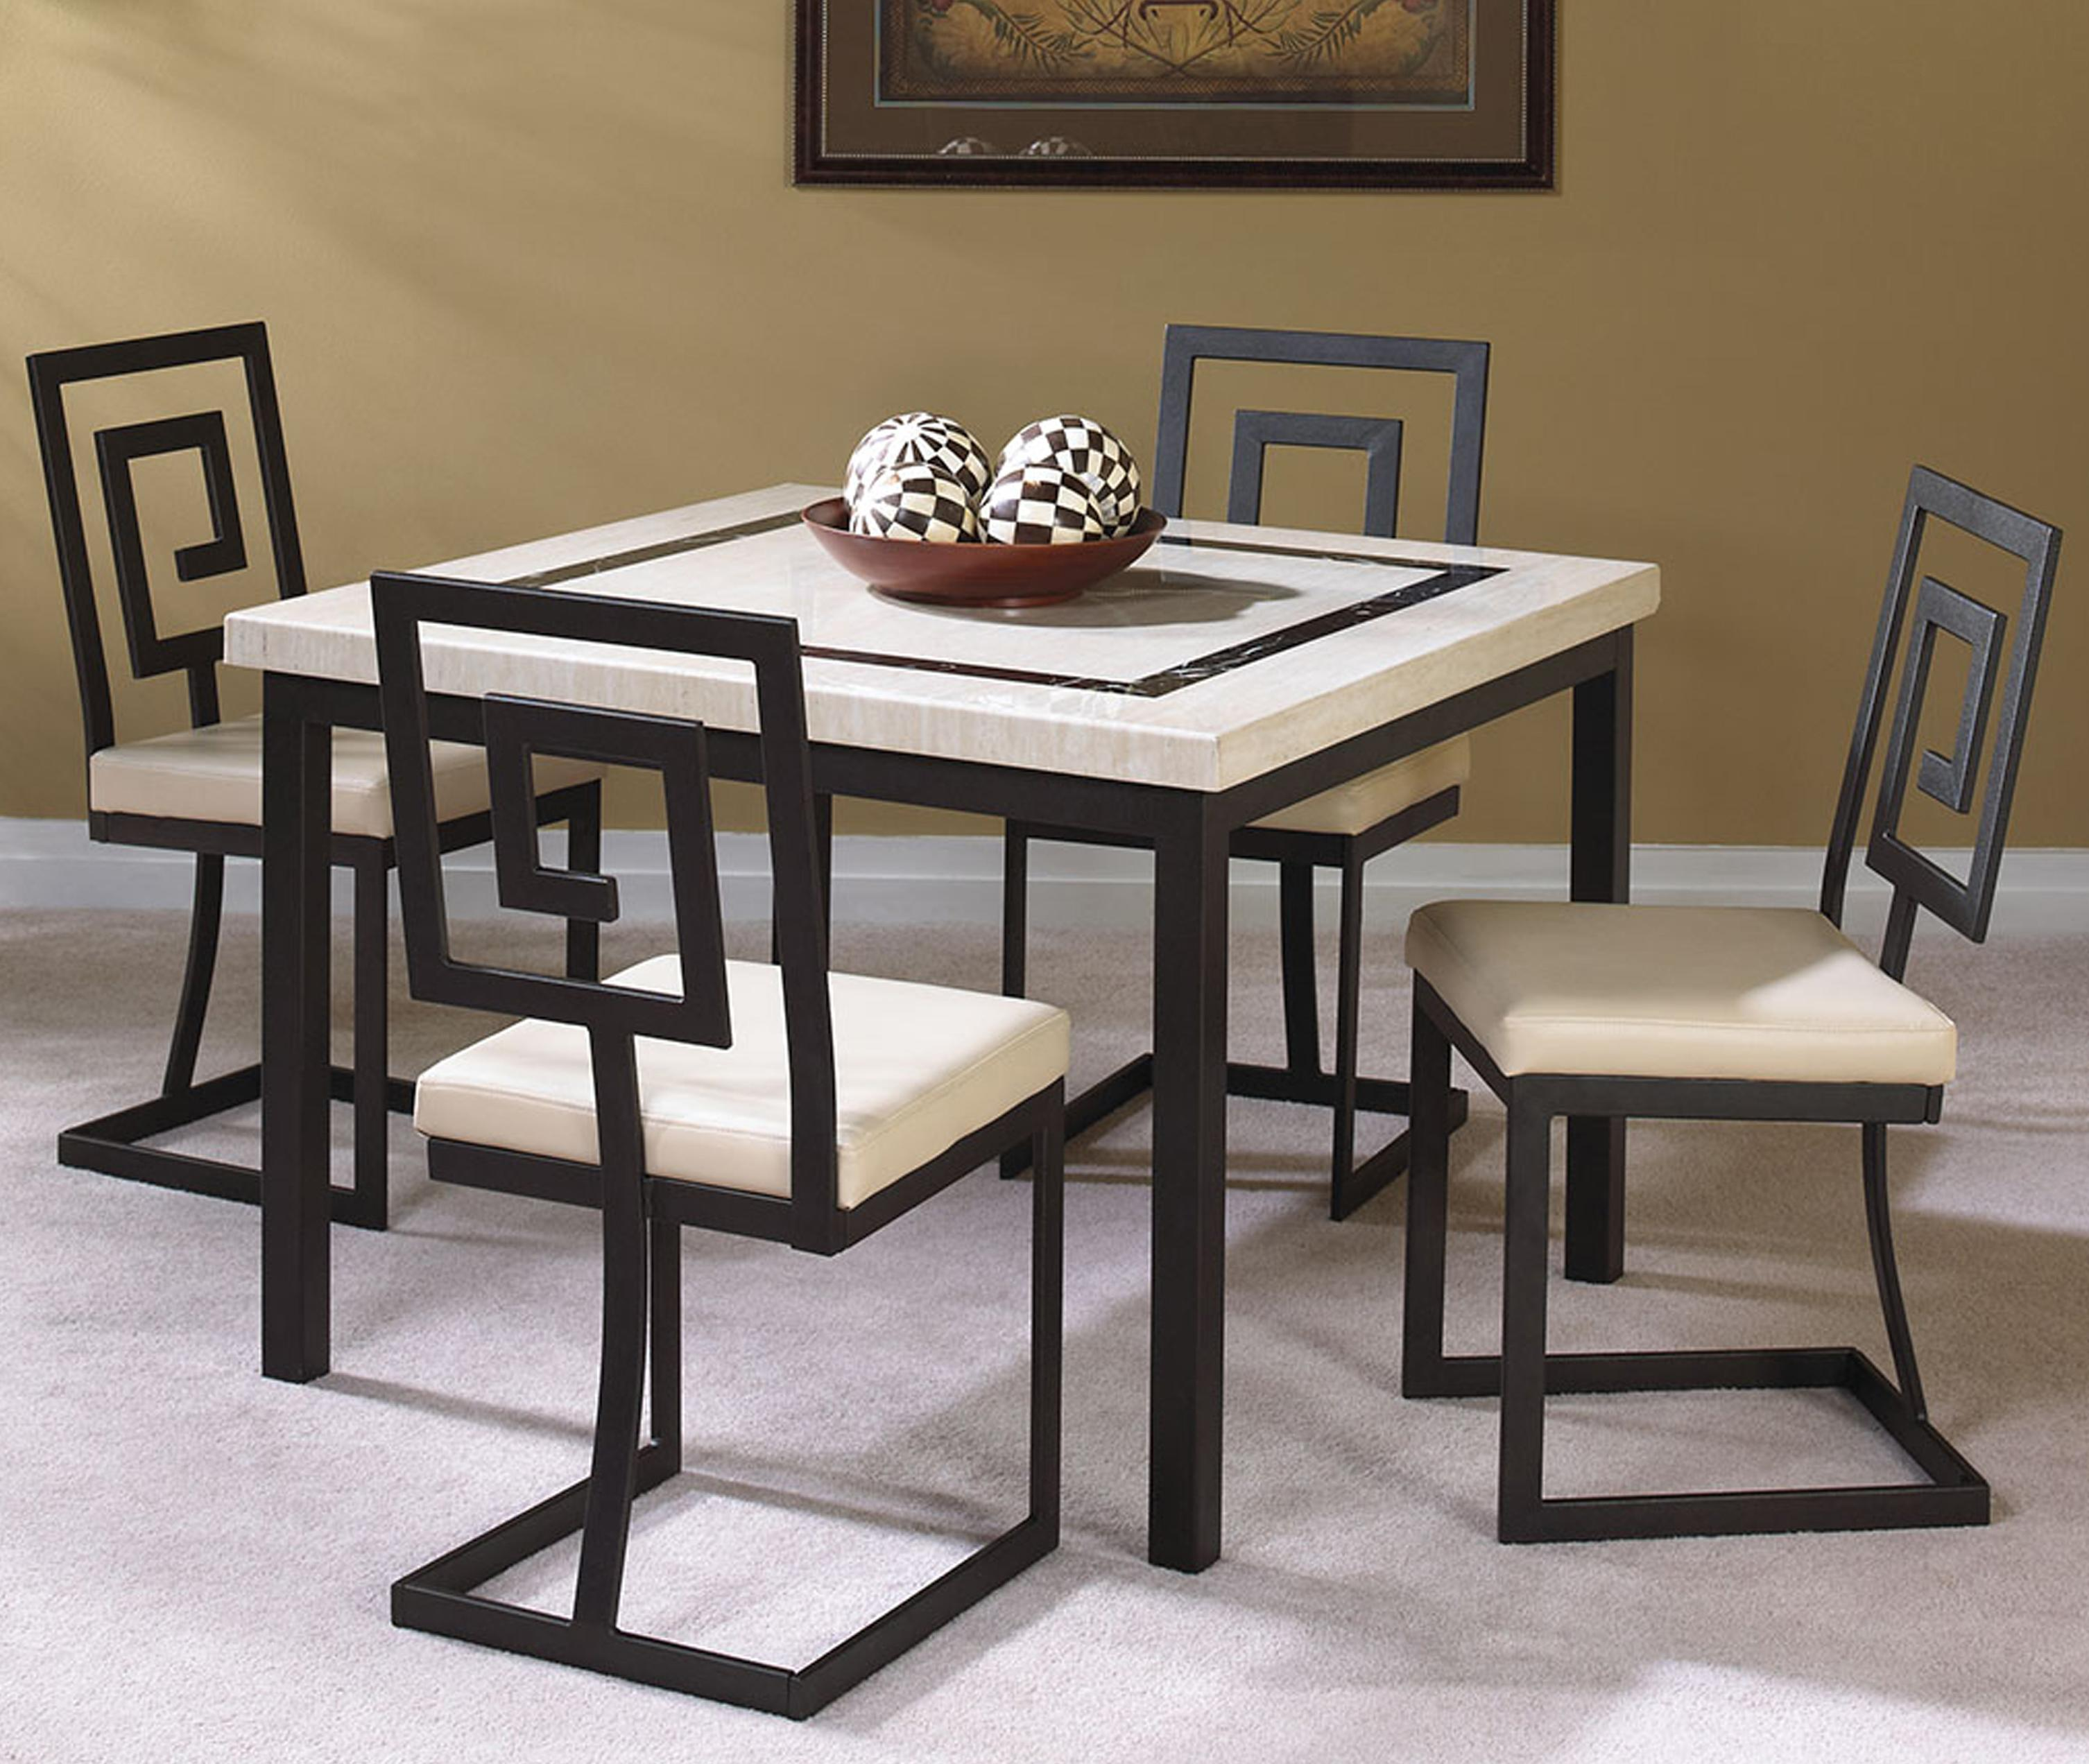 Cramco, Inc Maze 5 Piece Dining Set   Item Number: W3442 51+